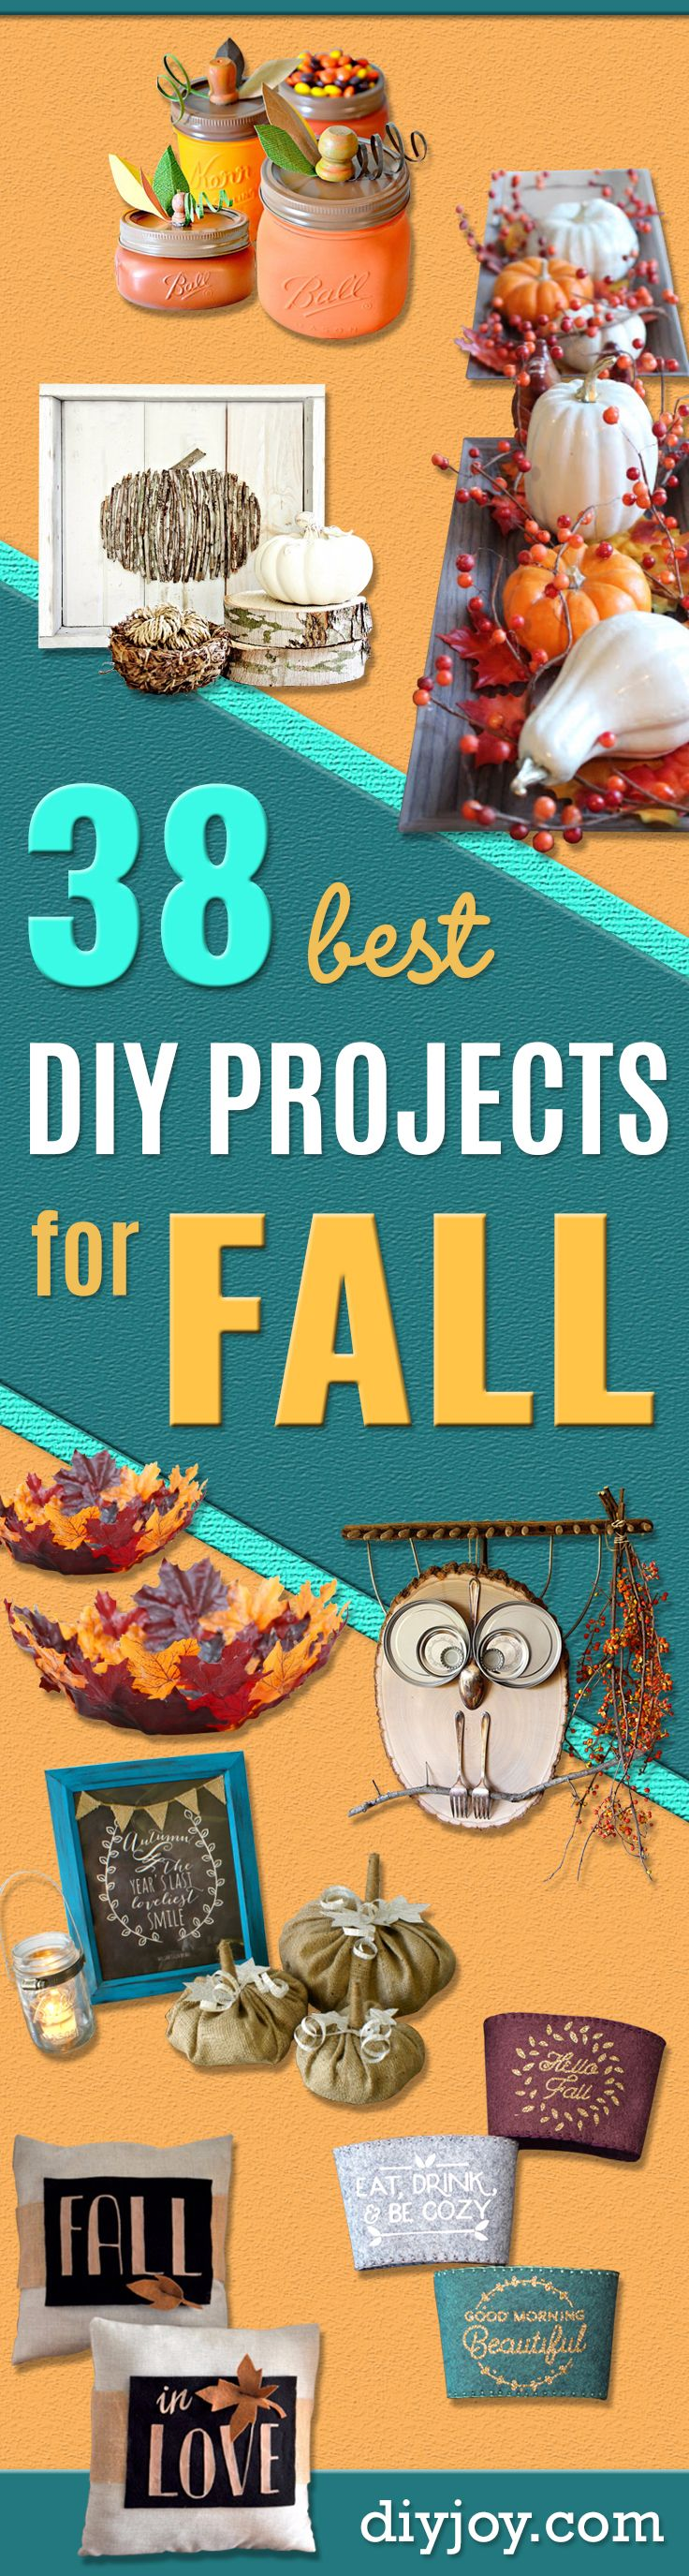 38 Best DIY Projects for Fall - Quick And Easy Projects For Fall, Fun DIY…love love love the owl